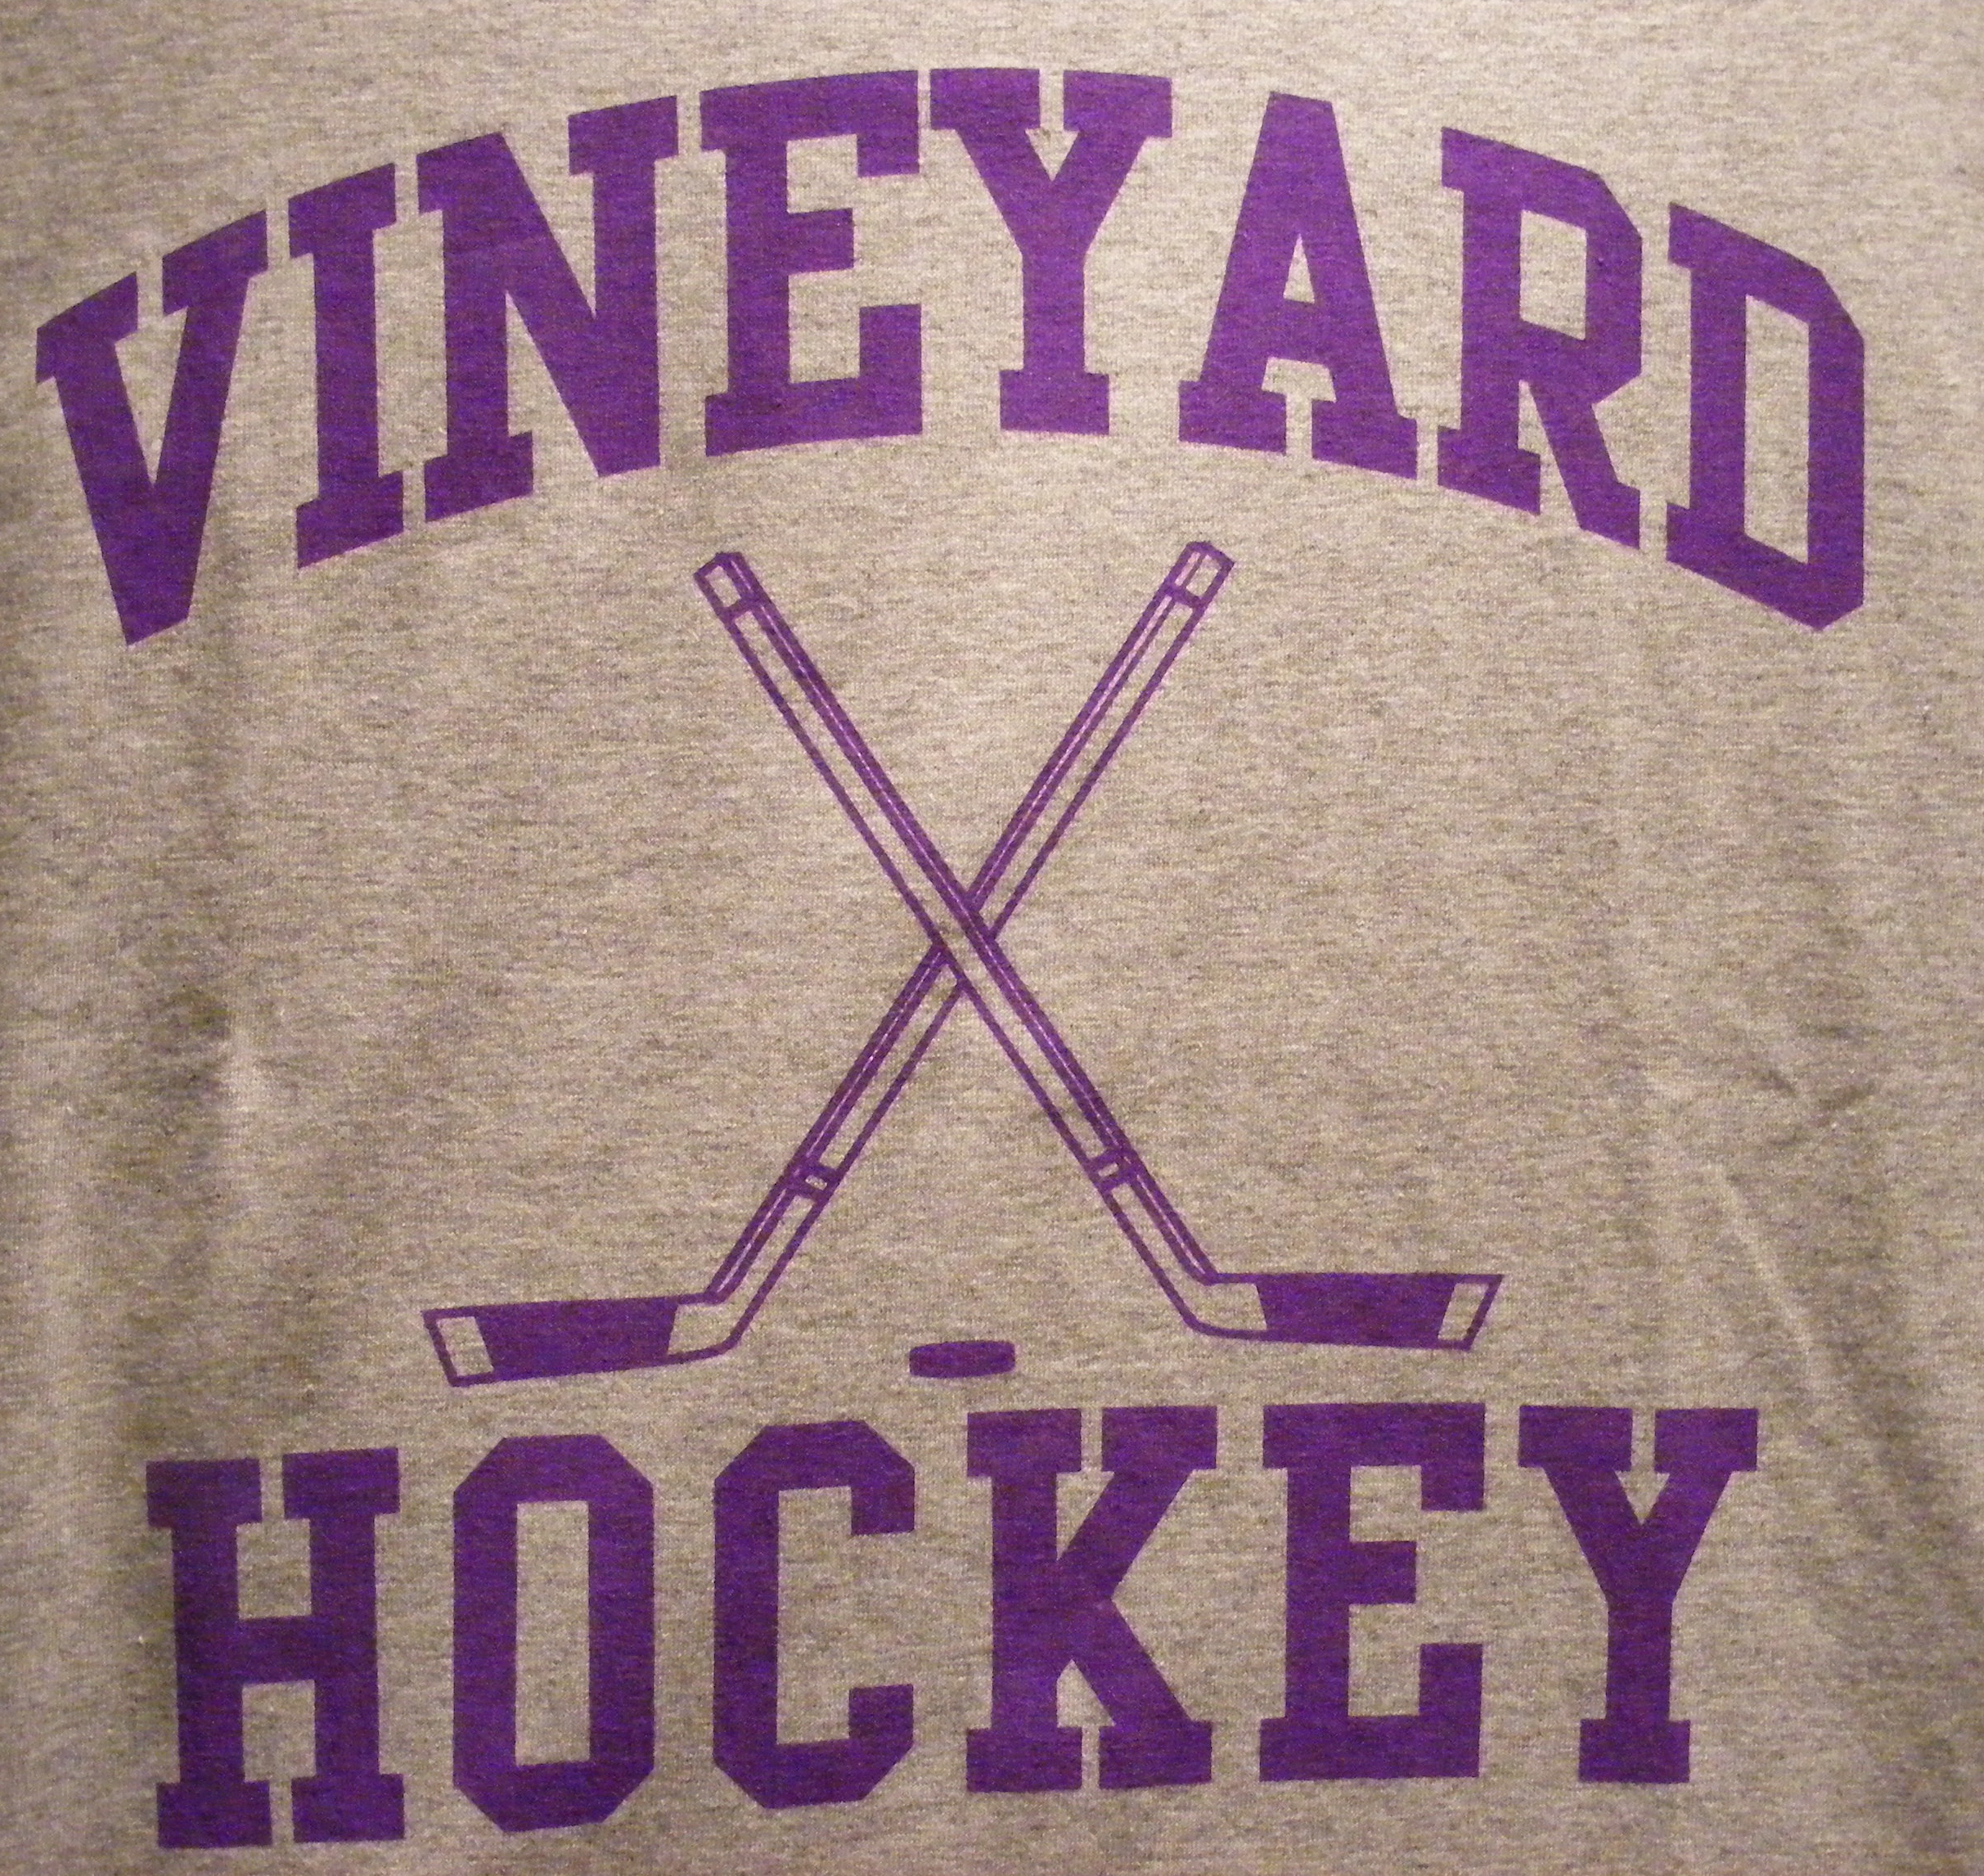 Vineyard Hockey Youth Tee Shirt